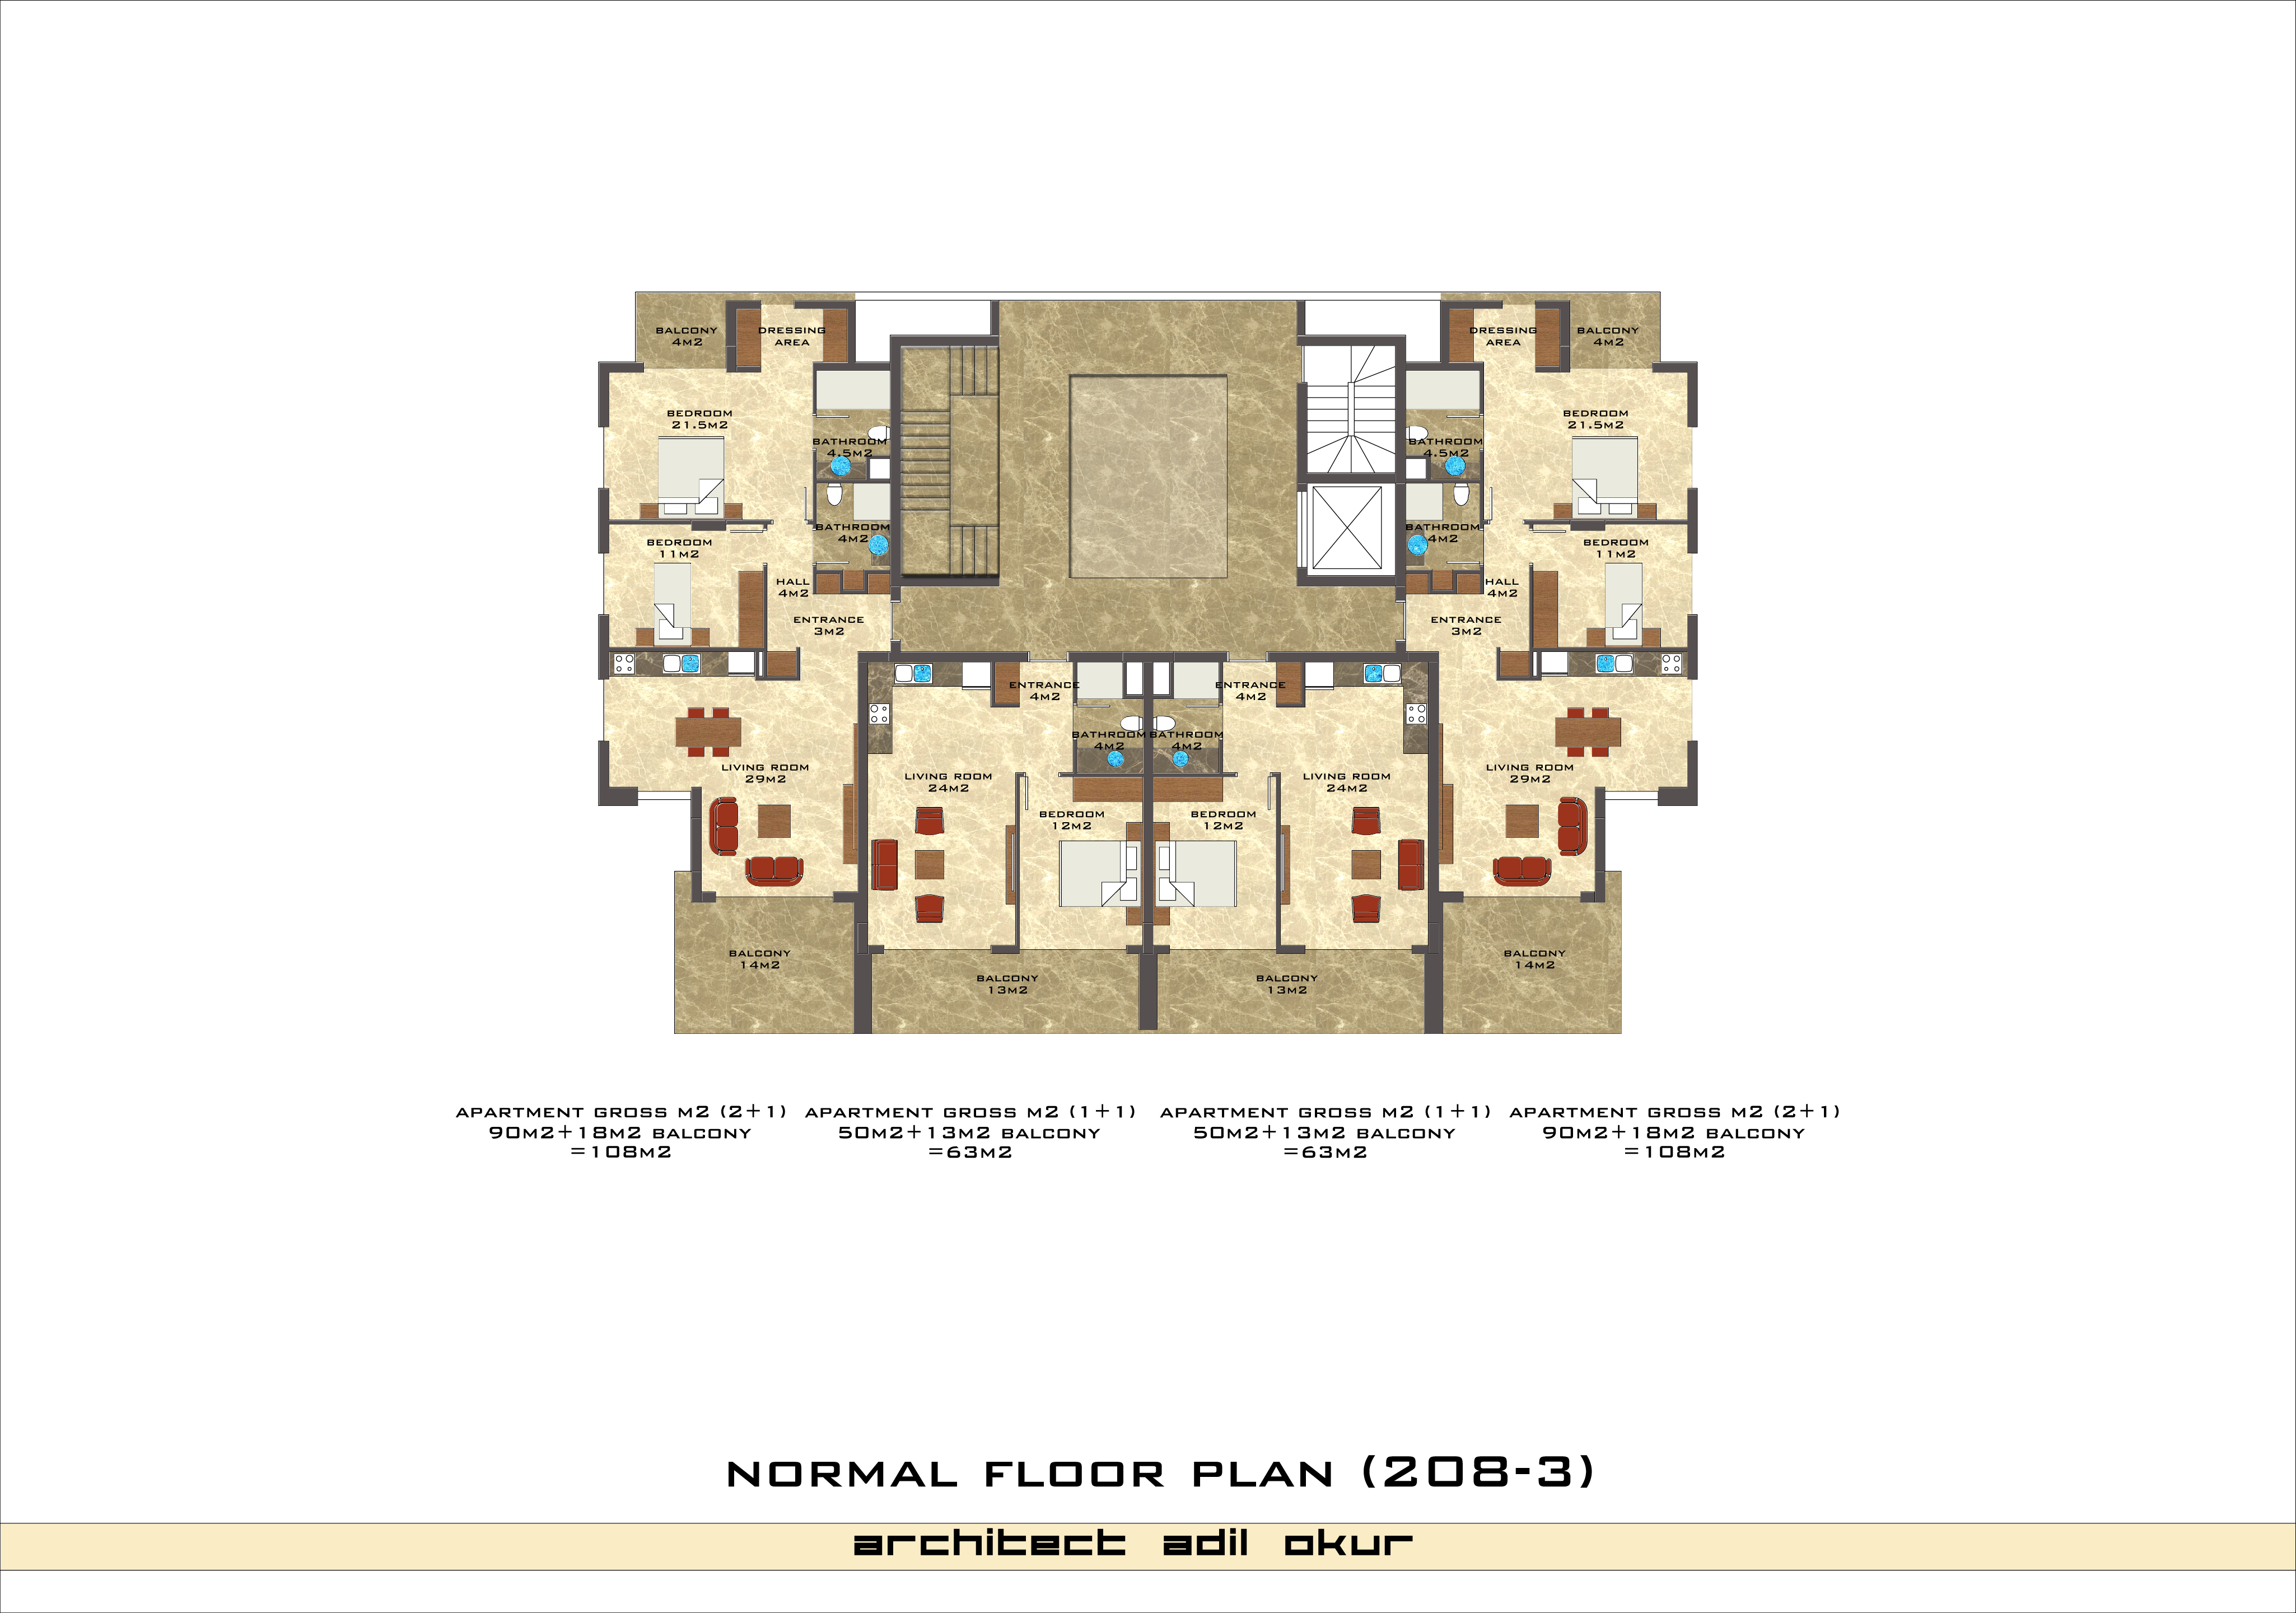 Normal Floor Plan